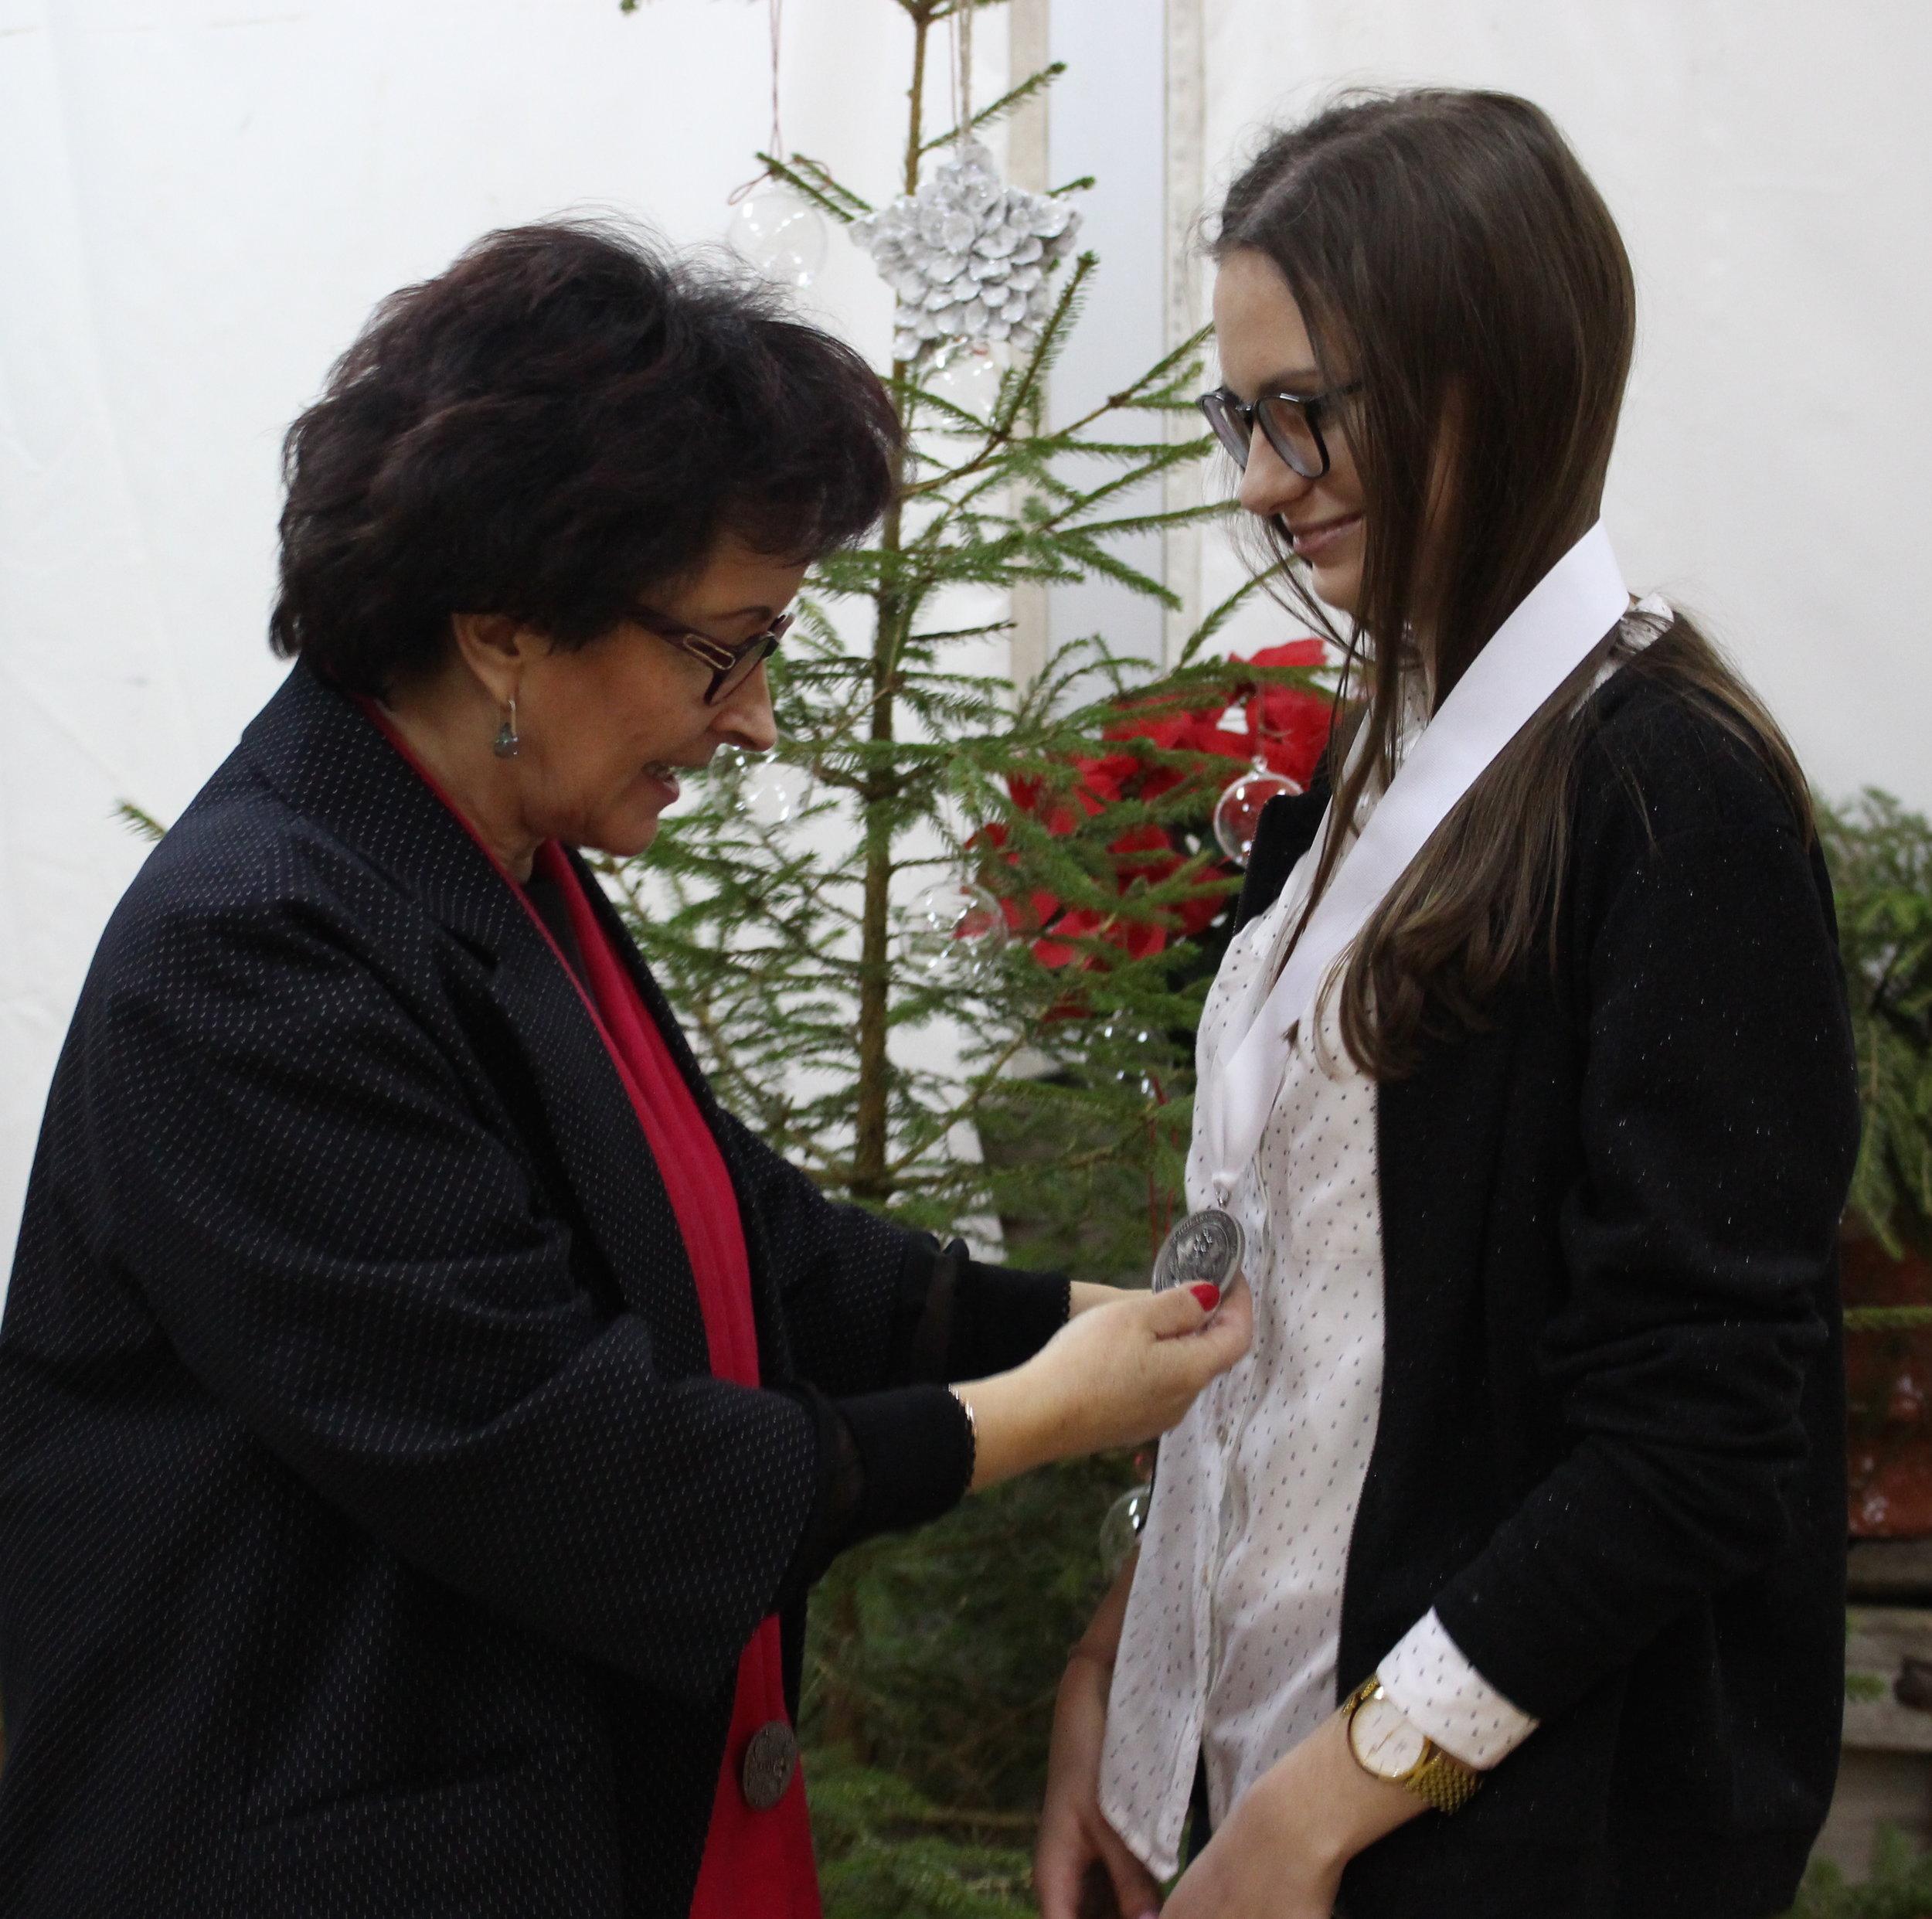 Dominika Wozniak receiving the International Scholarship of Honor  medal in Poland from Barbara Margol  of the Nidzica Foundation